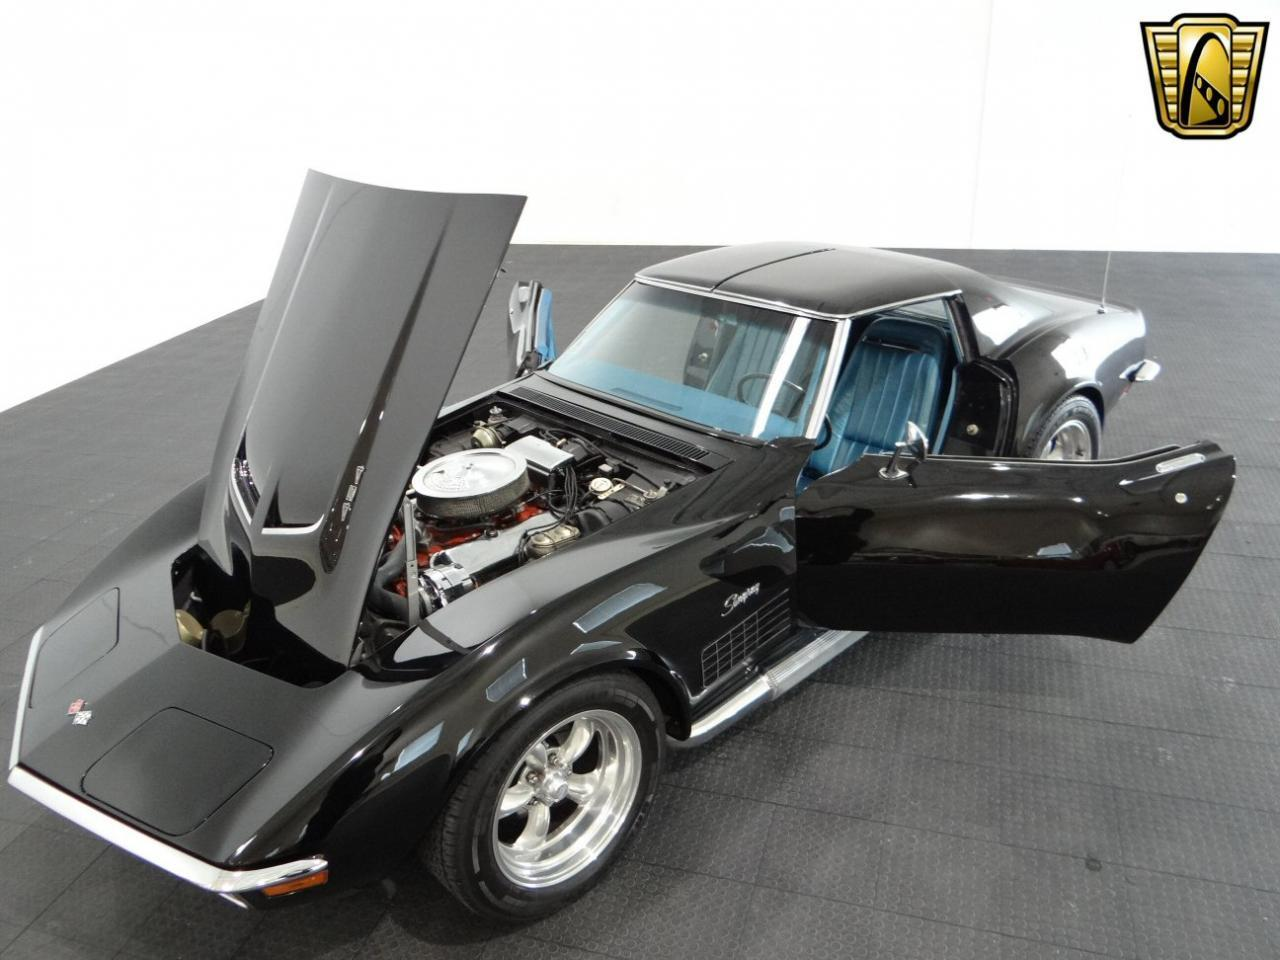 Large Picture of Classic '71 Chevrolet Corvette located in Crete Illinois - $57,000.00 - KF3X